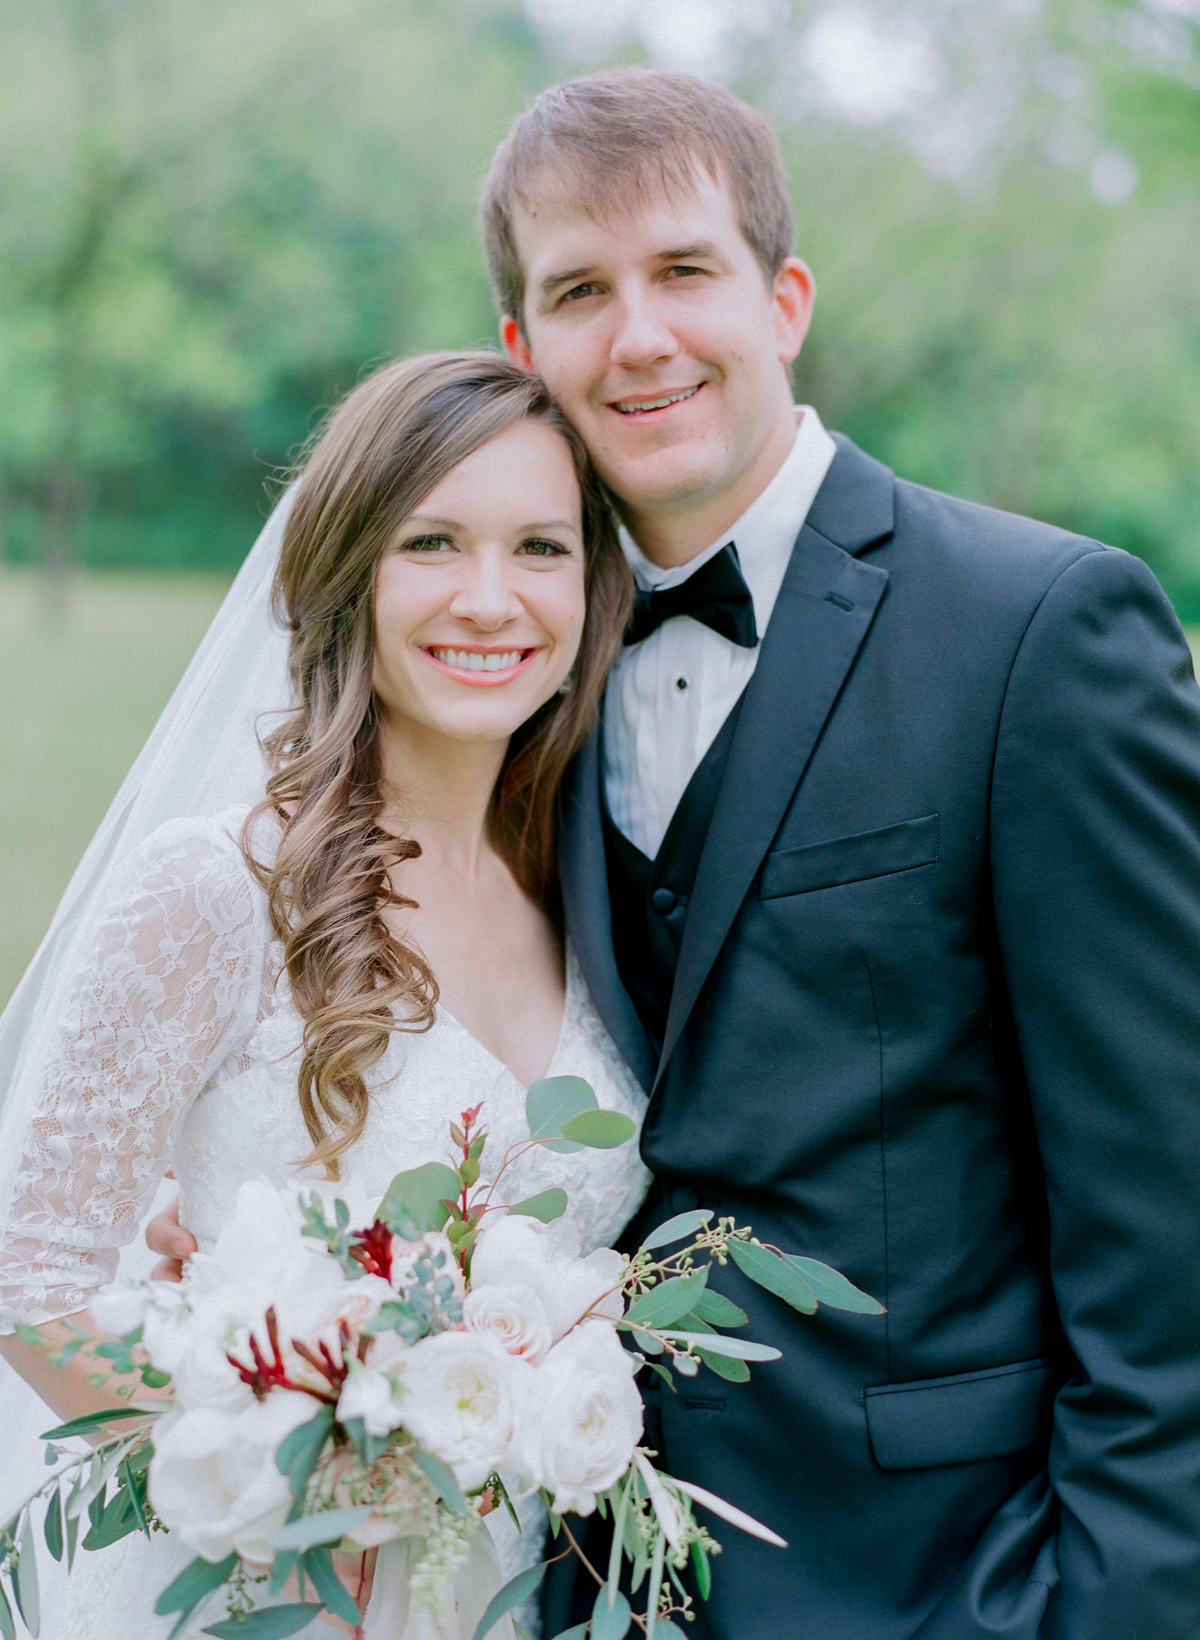 Intimate European Wedding | Fine Art Crestview Florida Wedding | Jennifer Blair Photography